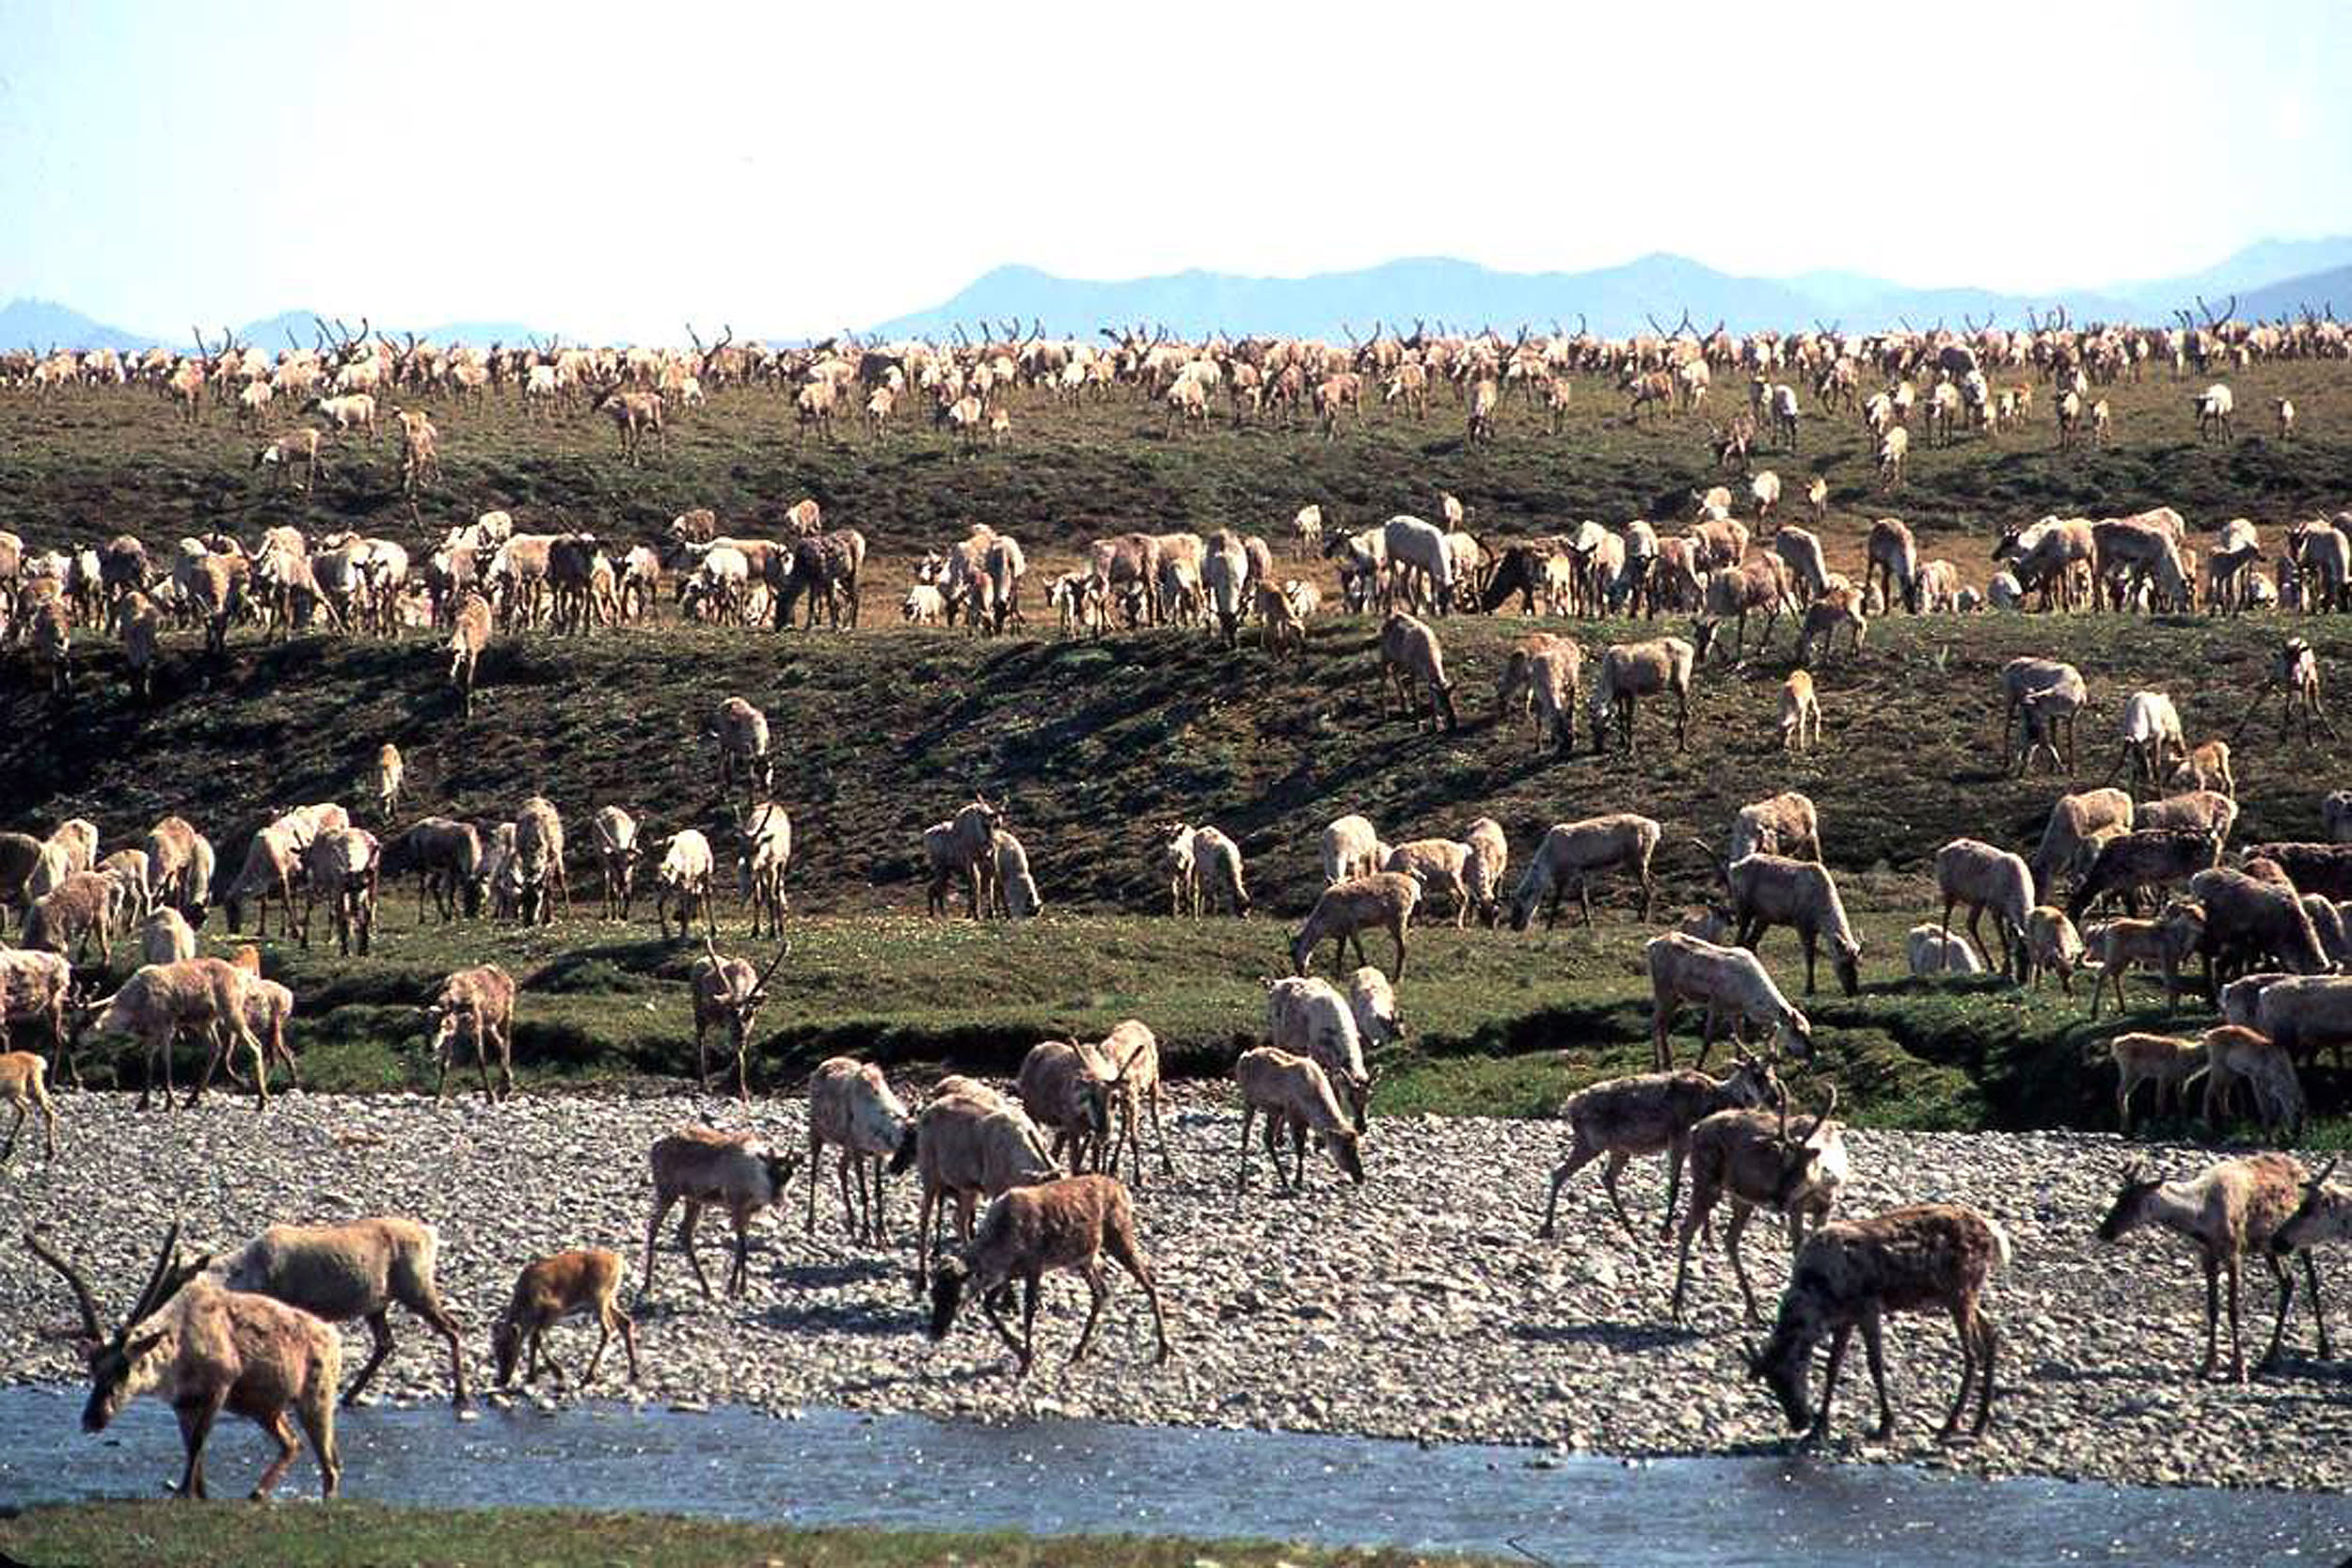 US approves contentious oil and gas leasing plan for Alaska wildlife refuge